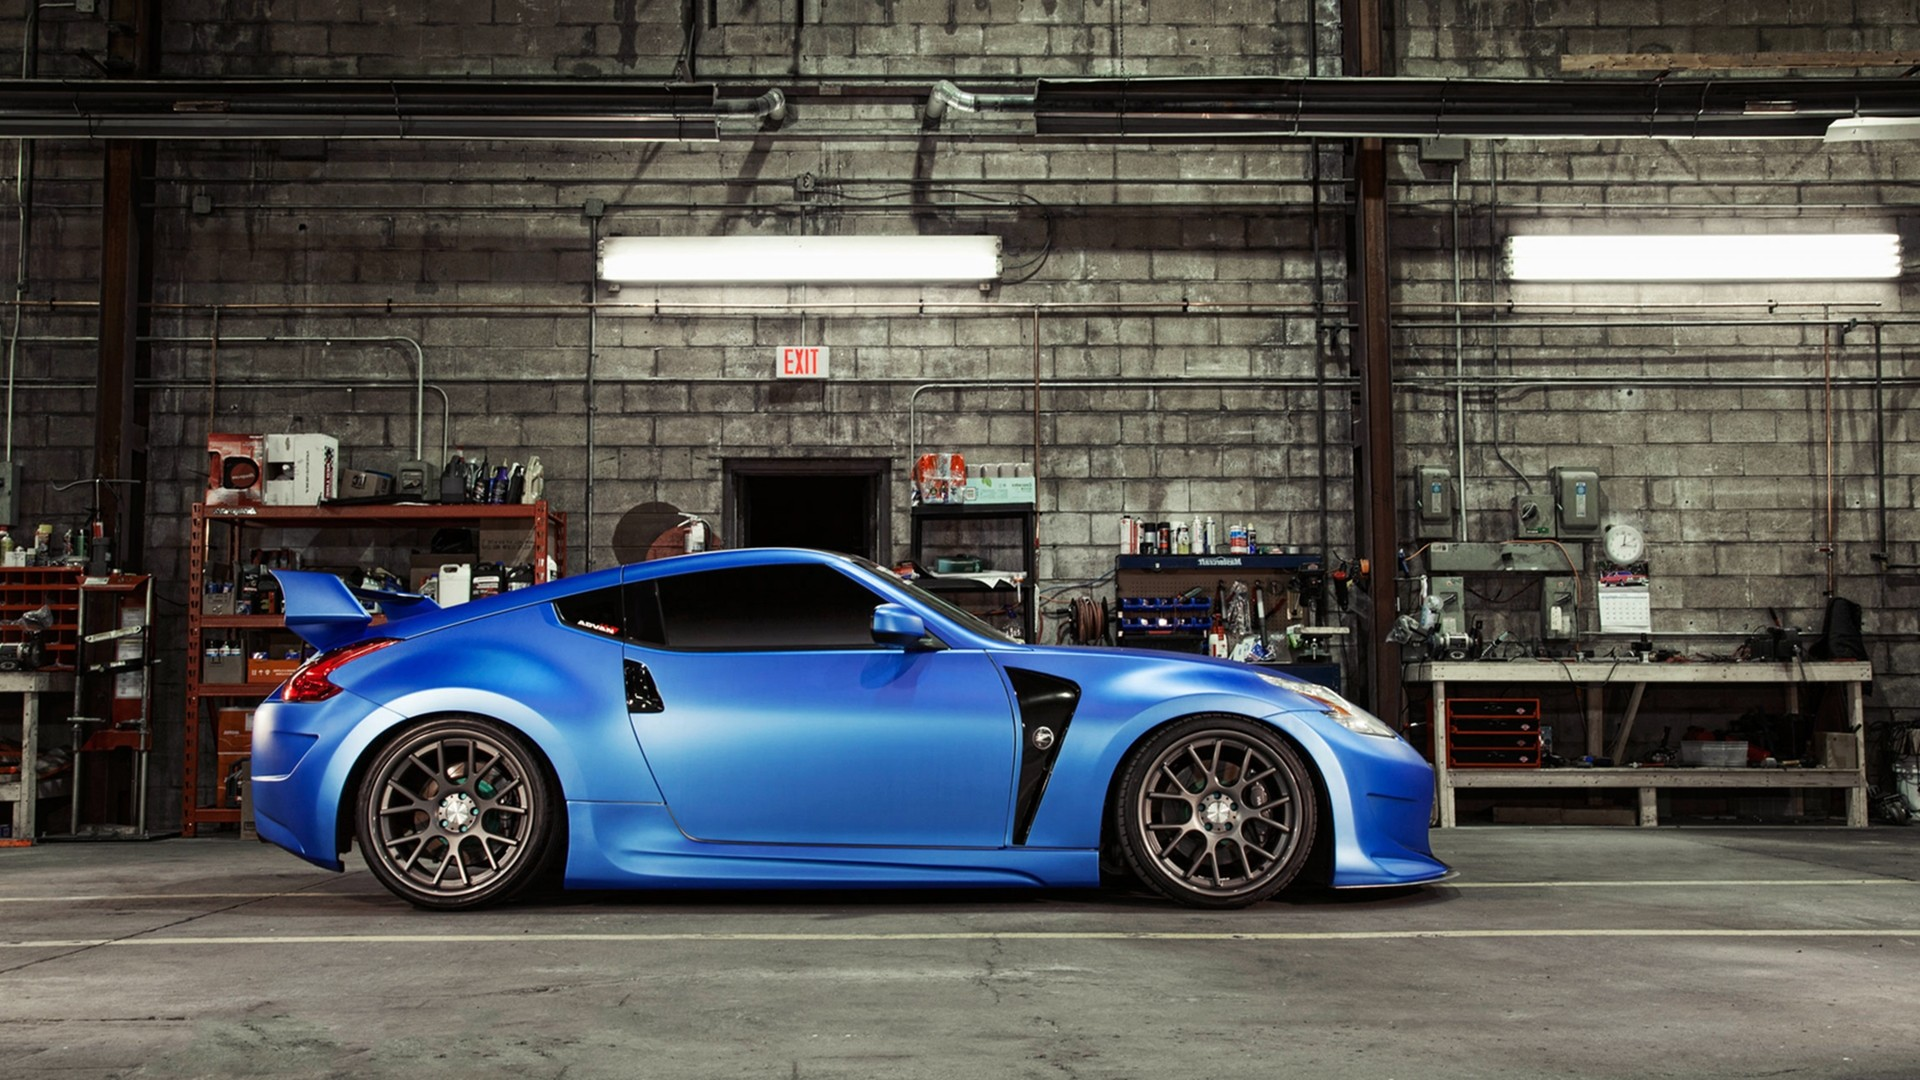 The best automotive photos in hd pt 1 17 pics i like to waste my time - Site internet garage automobile ...